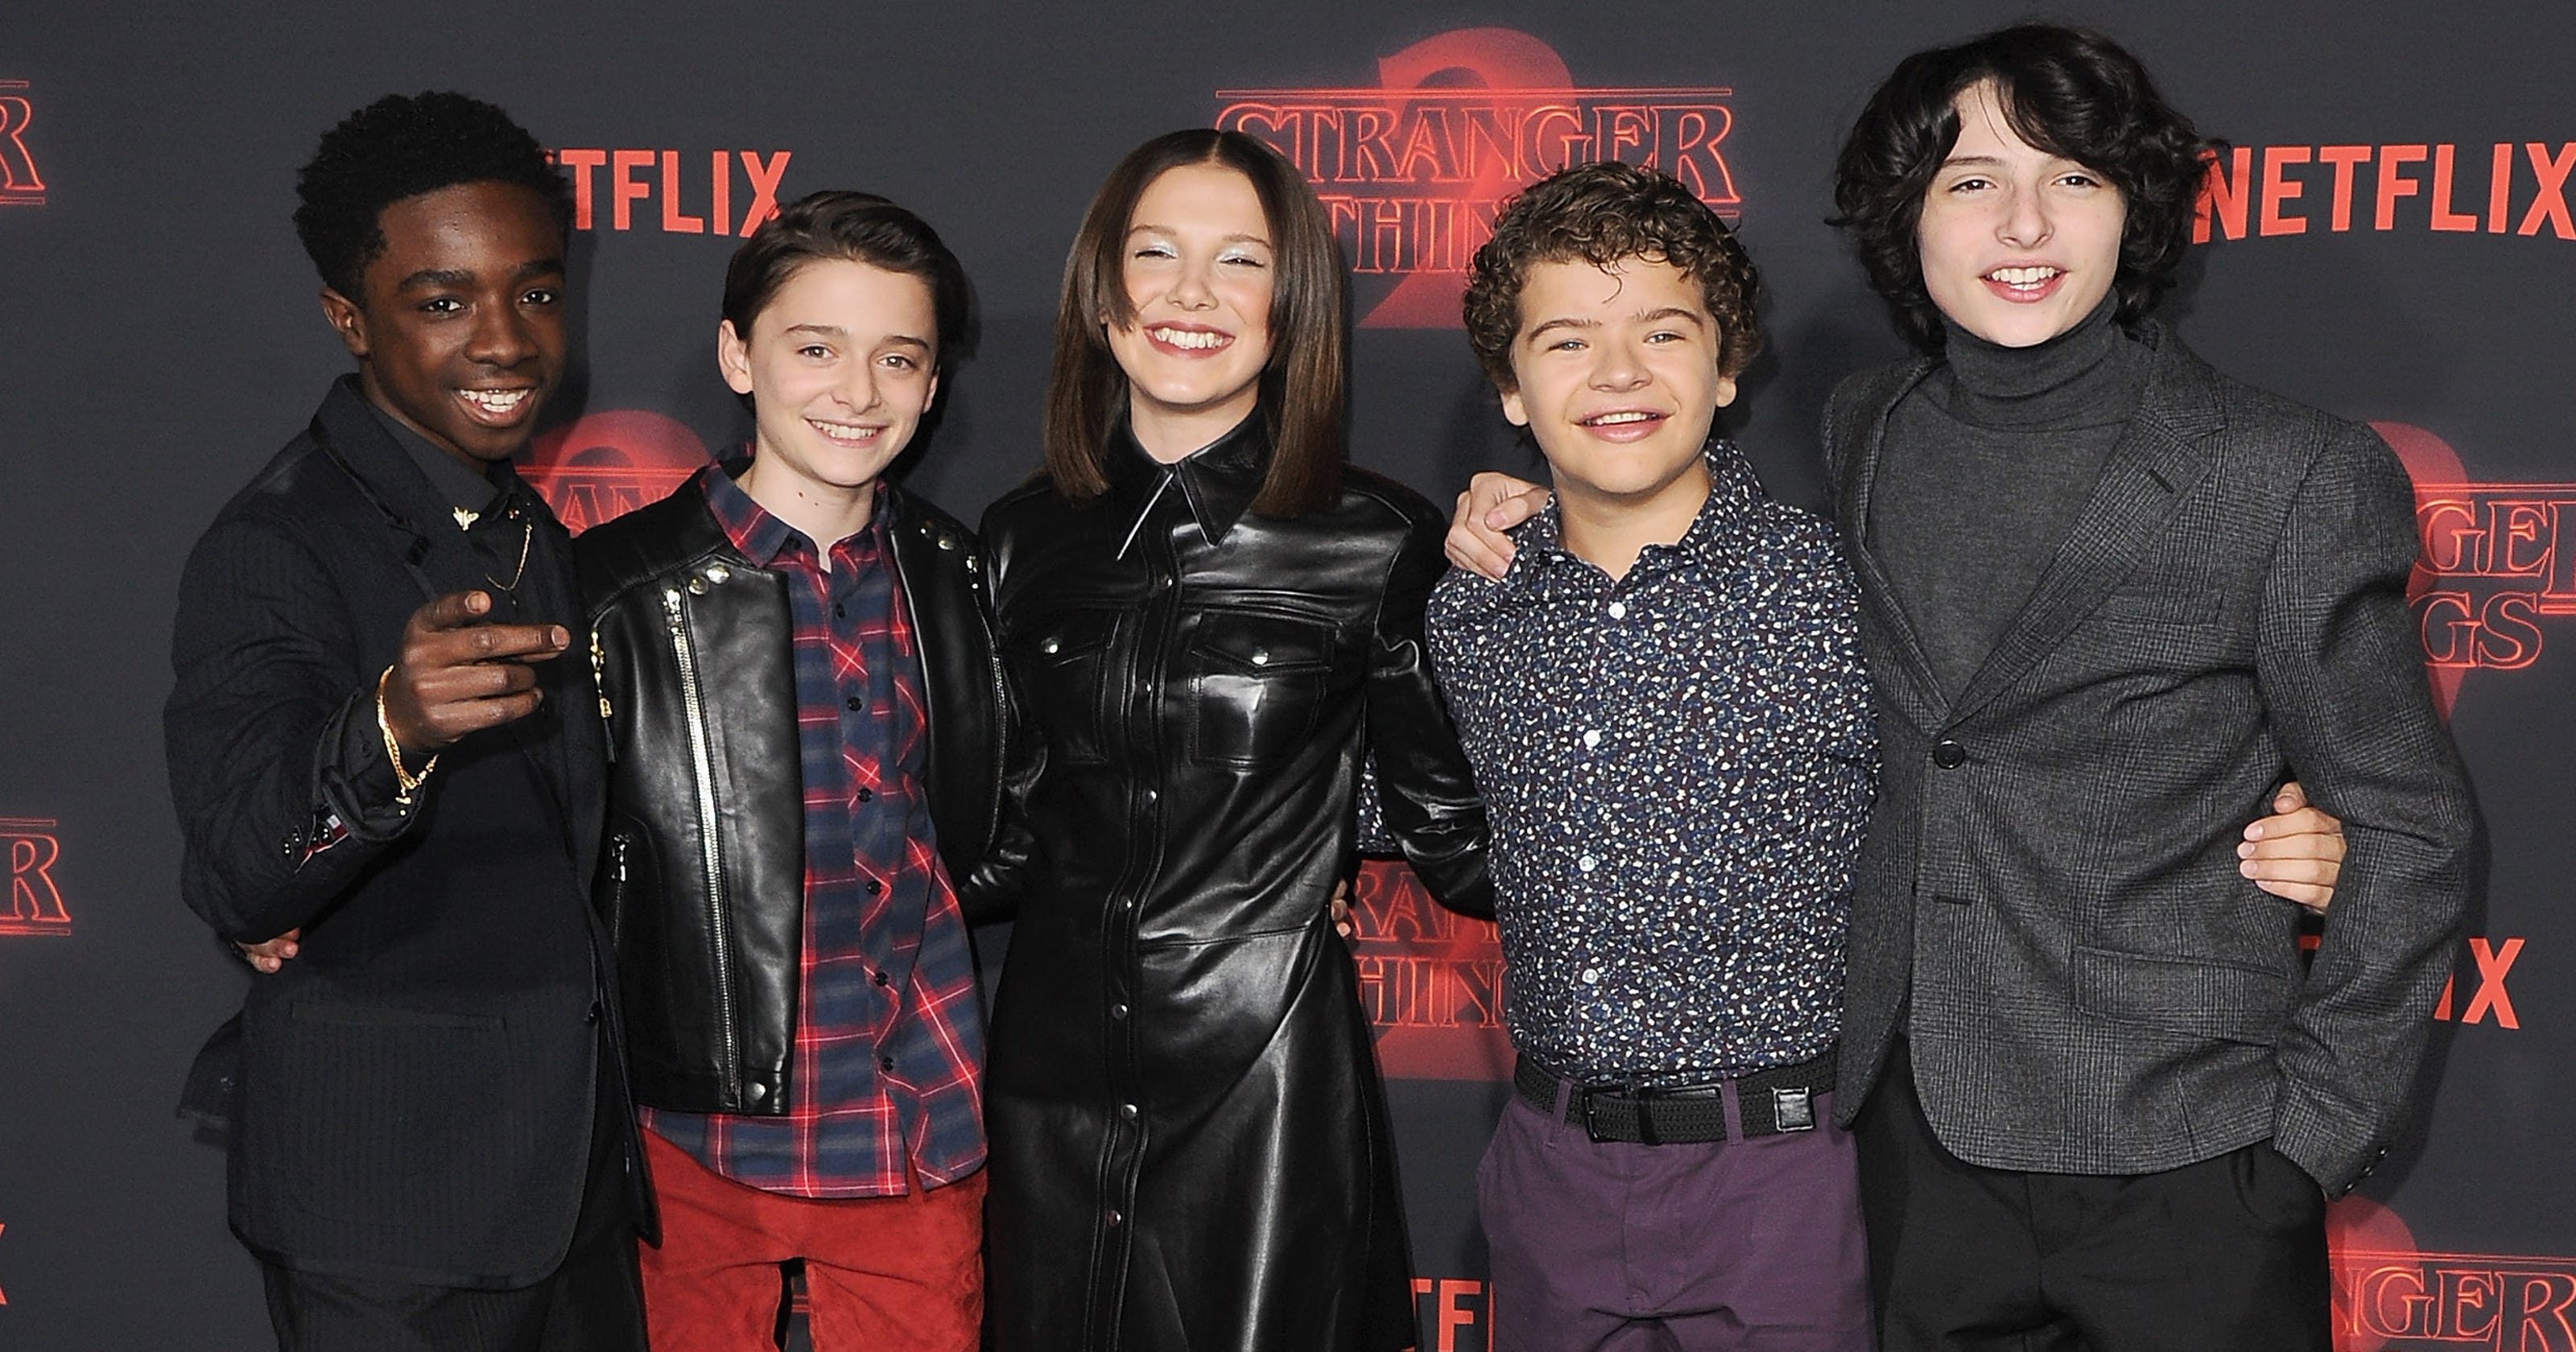 Stranger Things 2' premiere: L A  turns into Hawkins, Ind